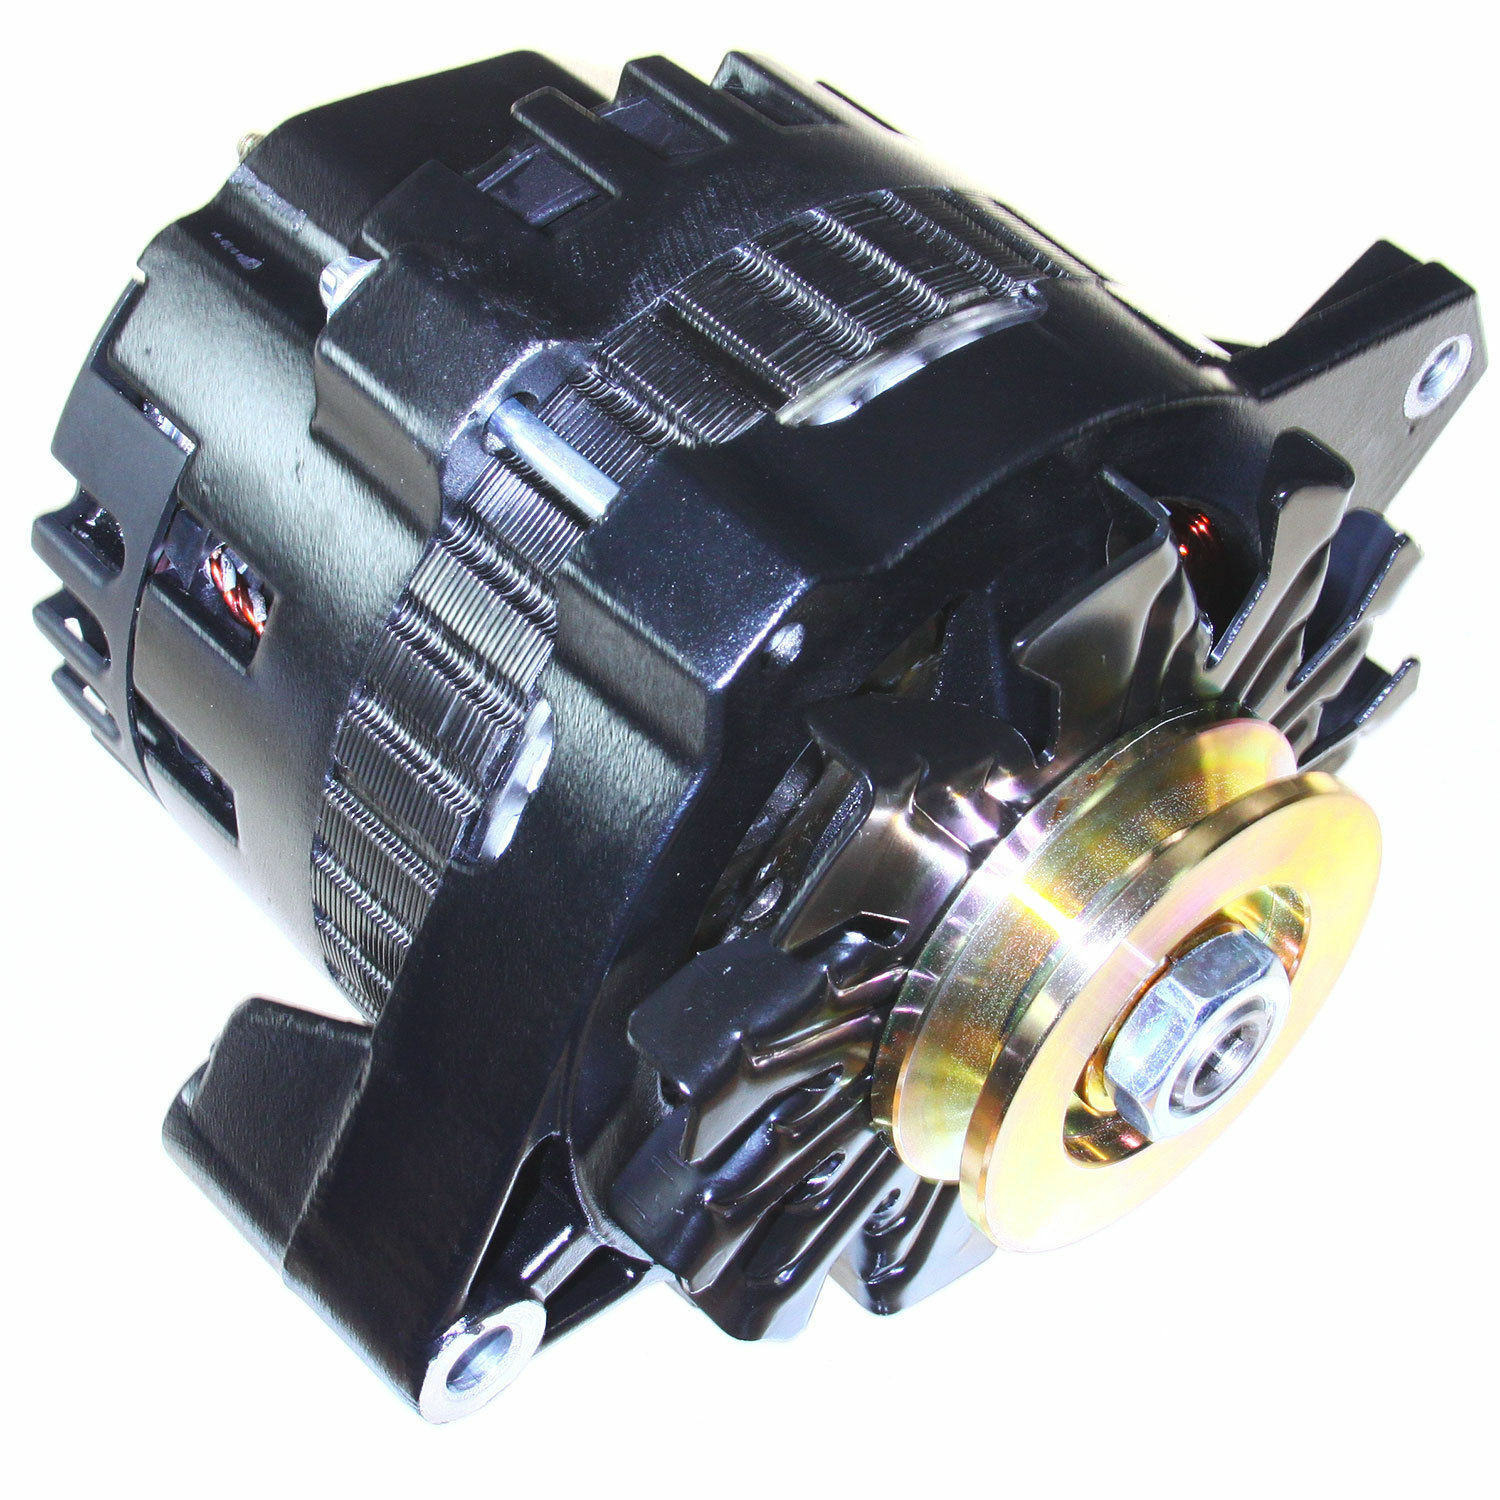 New Alternator Fitting Wire Just Wirings Diagram 3 Ford Voltage Black High Output Fit Gm 65 85 1 One 220 Amps Rh Picclick Com Chevy 2wire Wiring